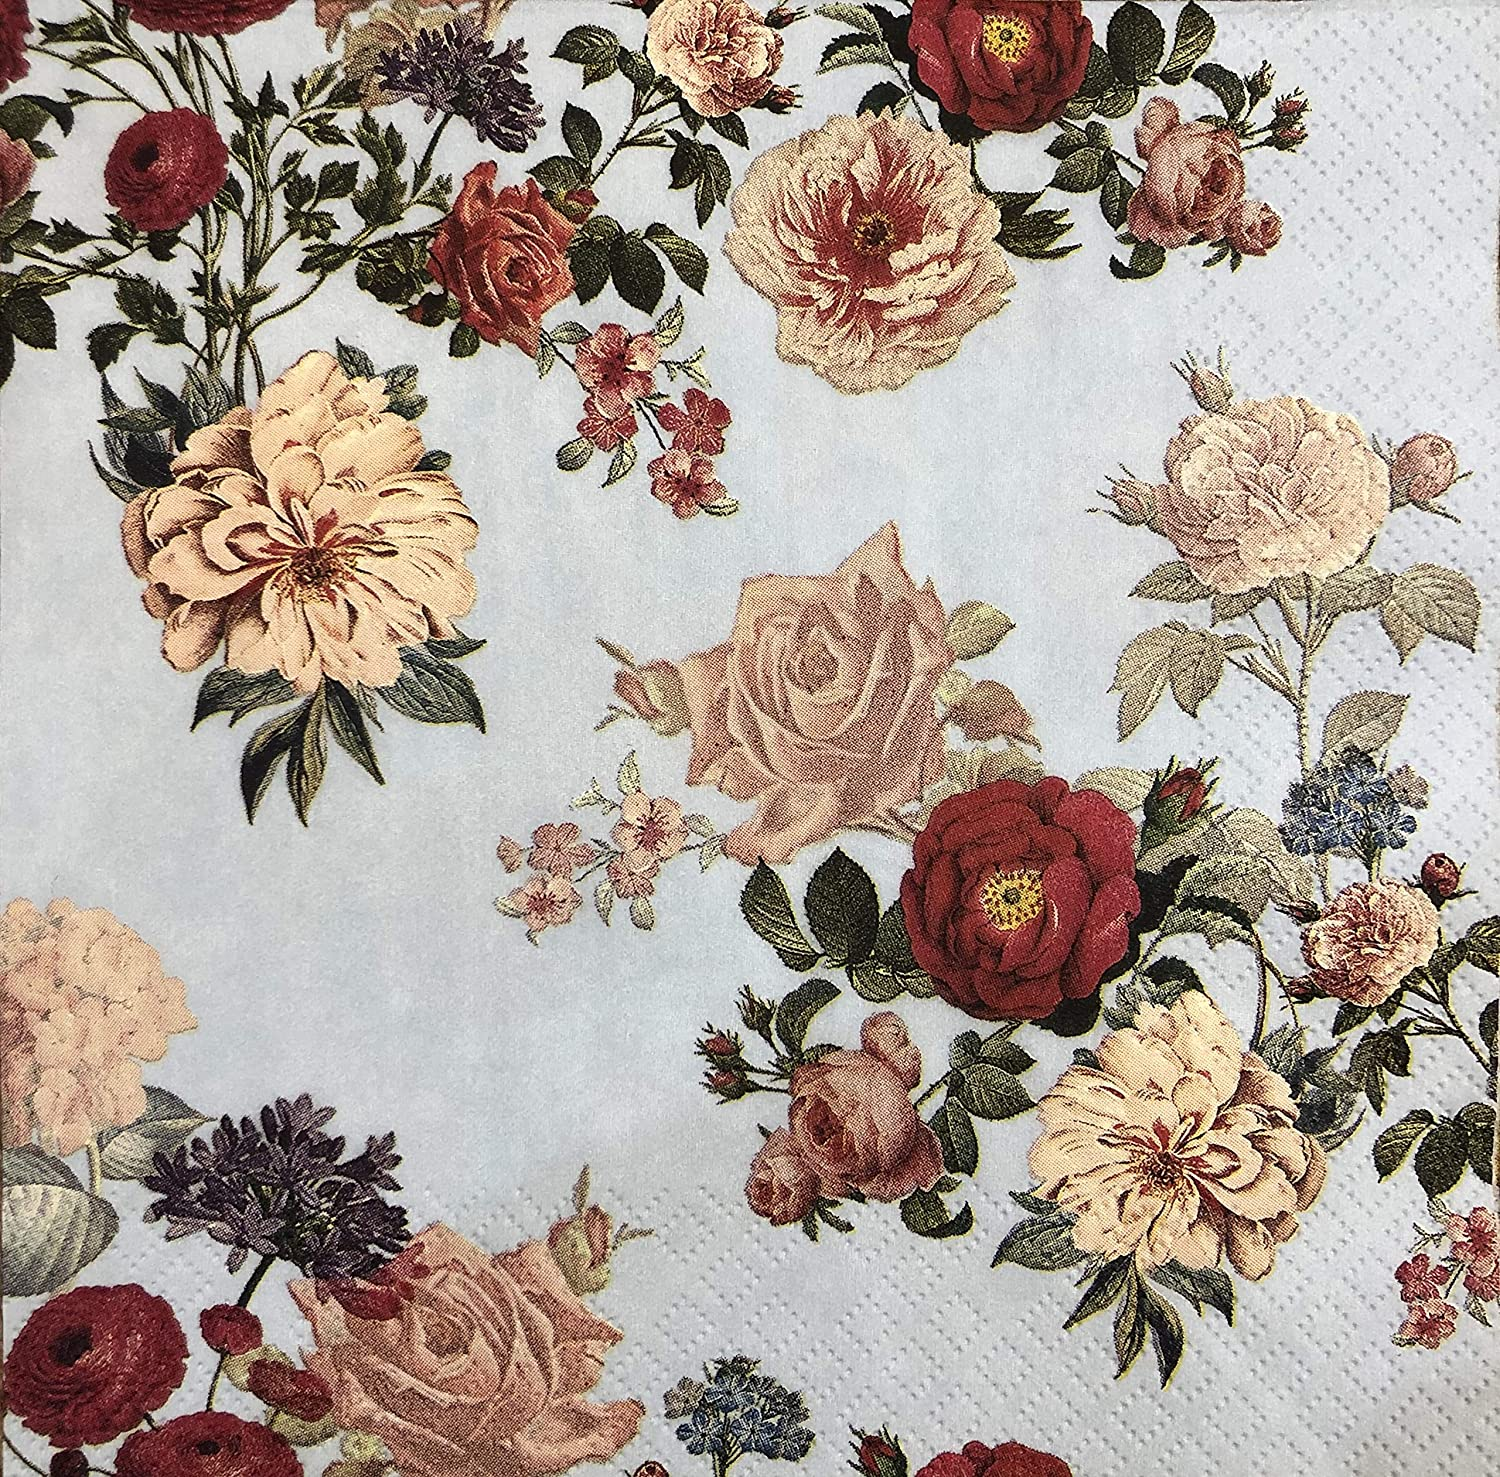 2 Single Paper Napkins for DECOUPAGE Crafts Collection Party Small Roses Flowers Spring